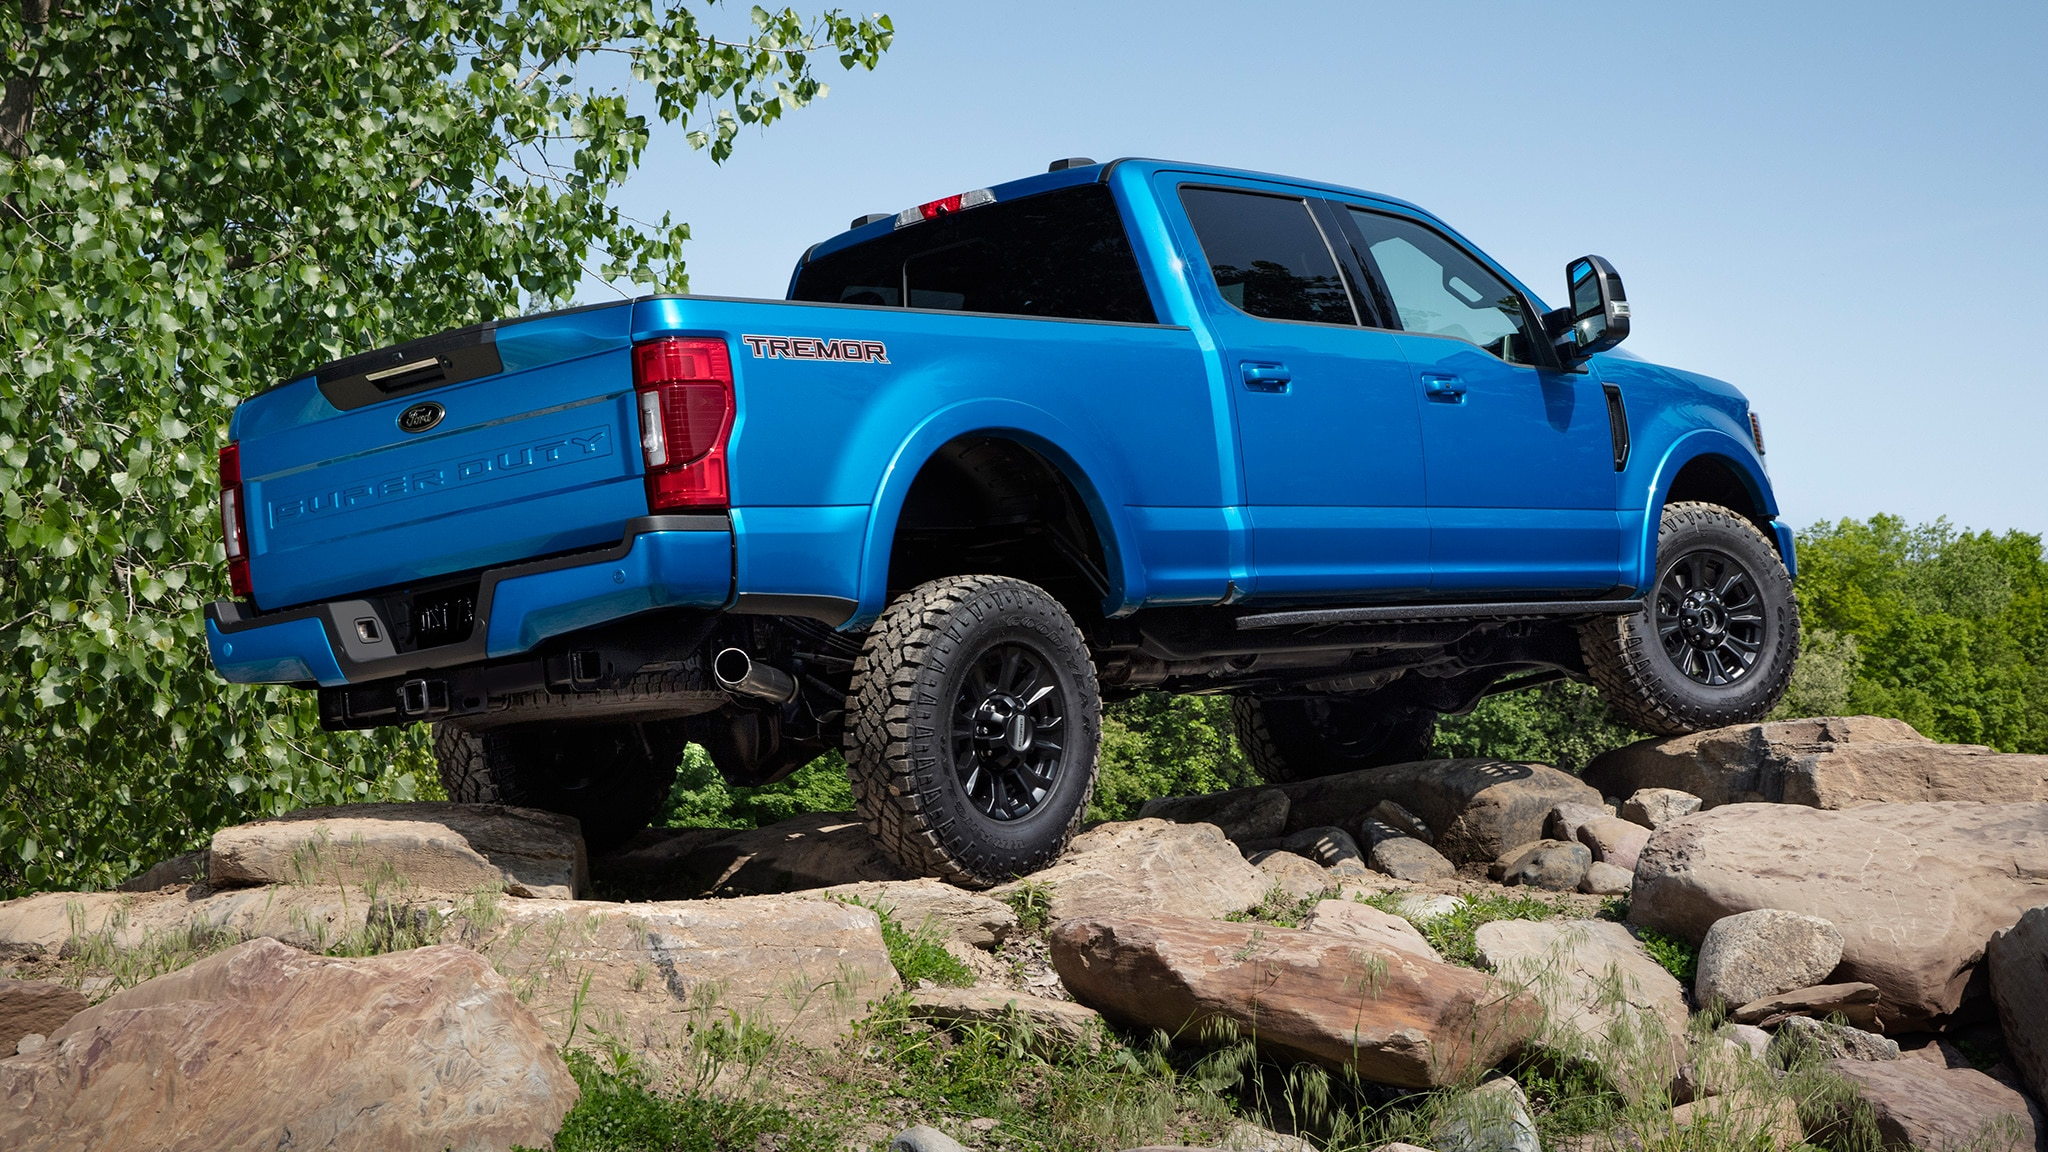 F250 Towing Capacity >> Ford Launches F-Series Super Duty Tremor Off-Road Model | Automobile Magazine